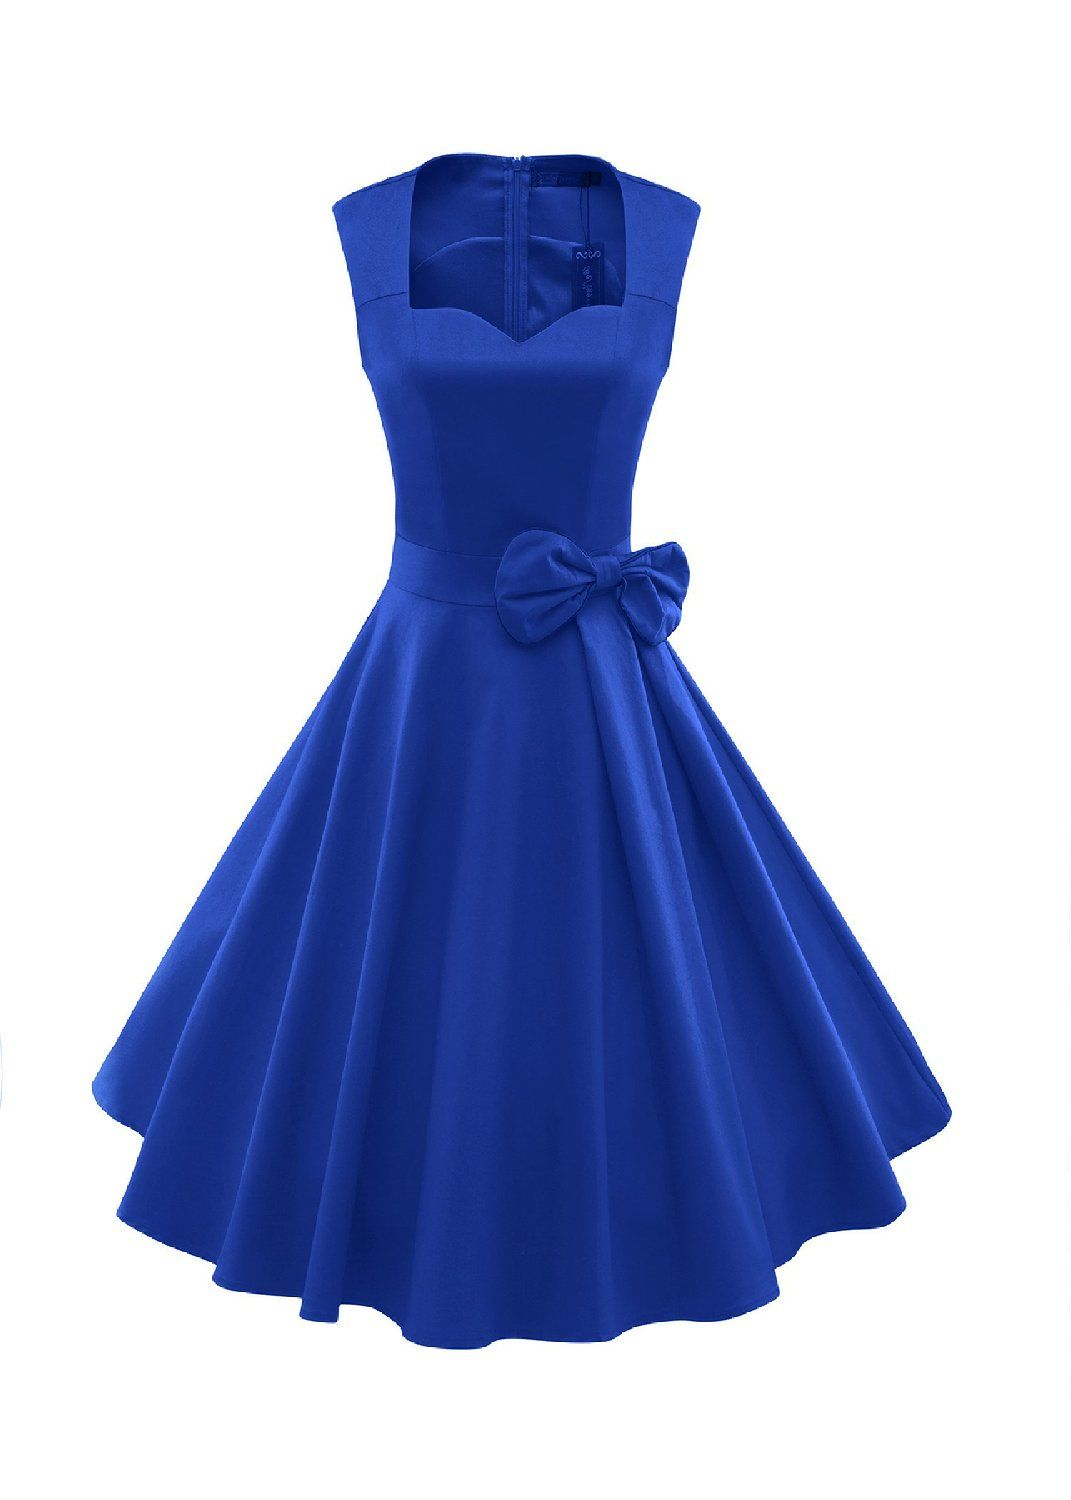 9d2892bab85 ILover Women s 1950s Style Vintage Rockabilly Swing Bow-knot Party Dress   Amazon Fashion